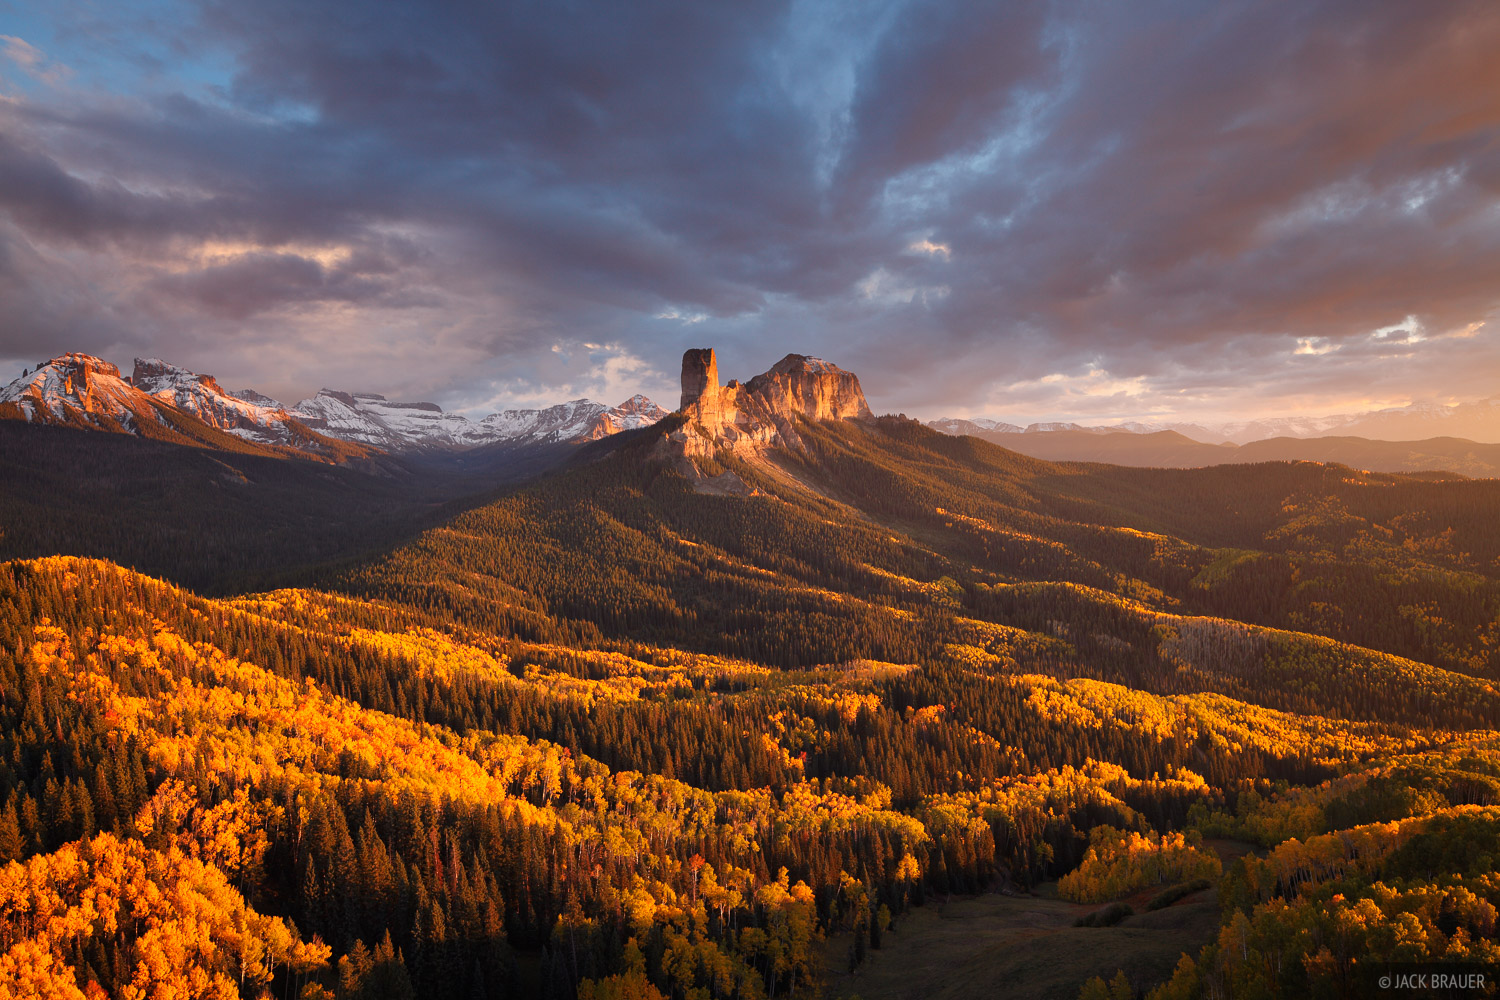 Sunset light on Chimney Rock and Courthouse Mountain in the Cimarron Range near Ridgway, Colorado.